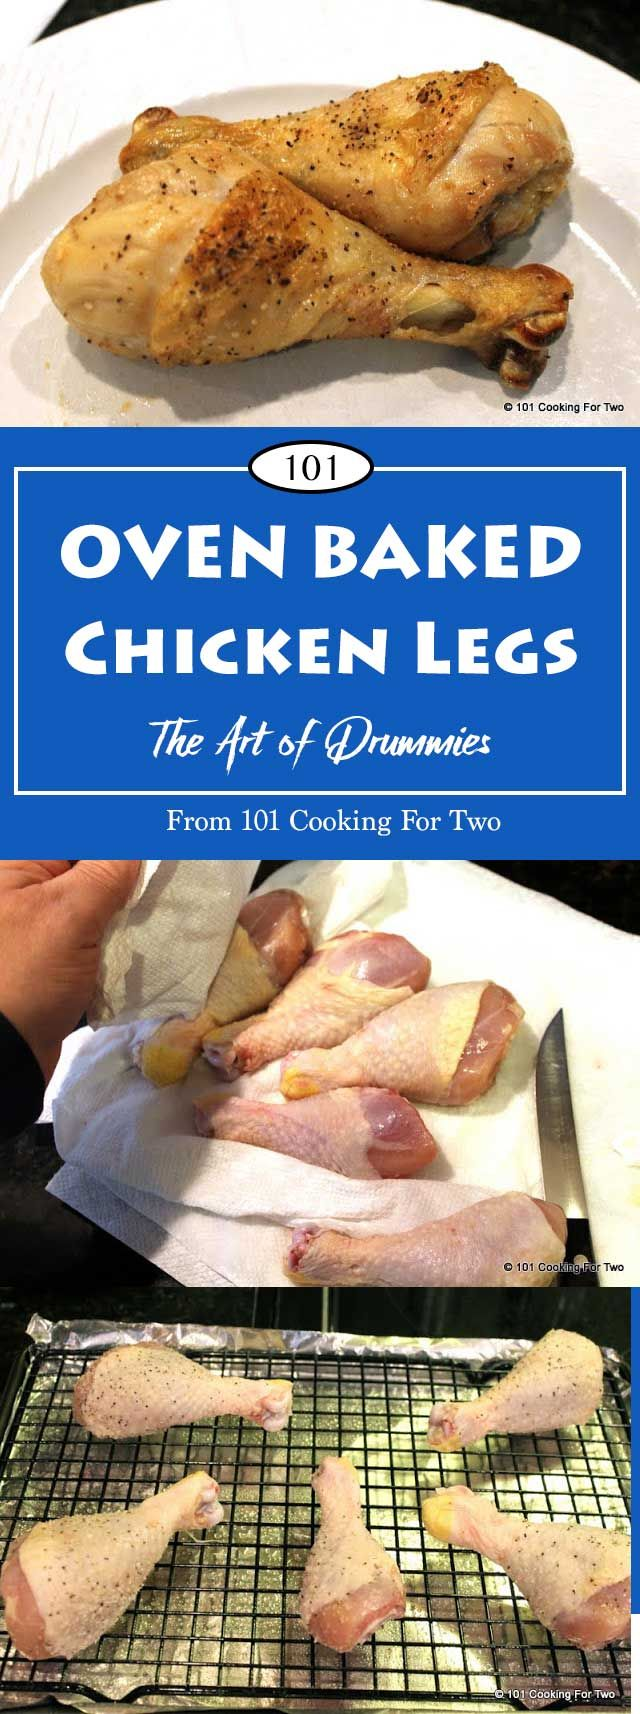 Convection Oven Baked Chicken Legs From 101 Cooking for Two